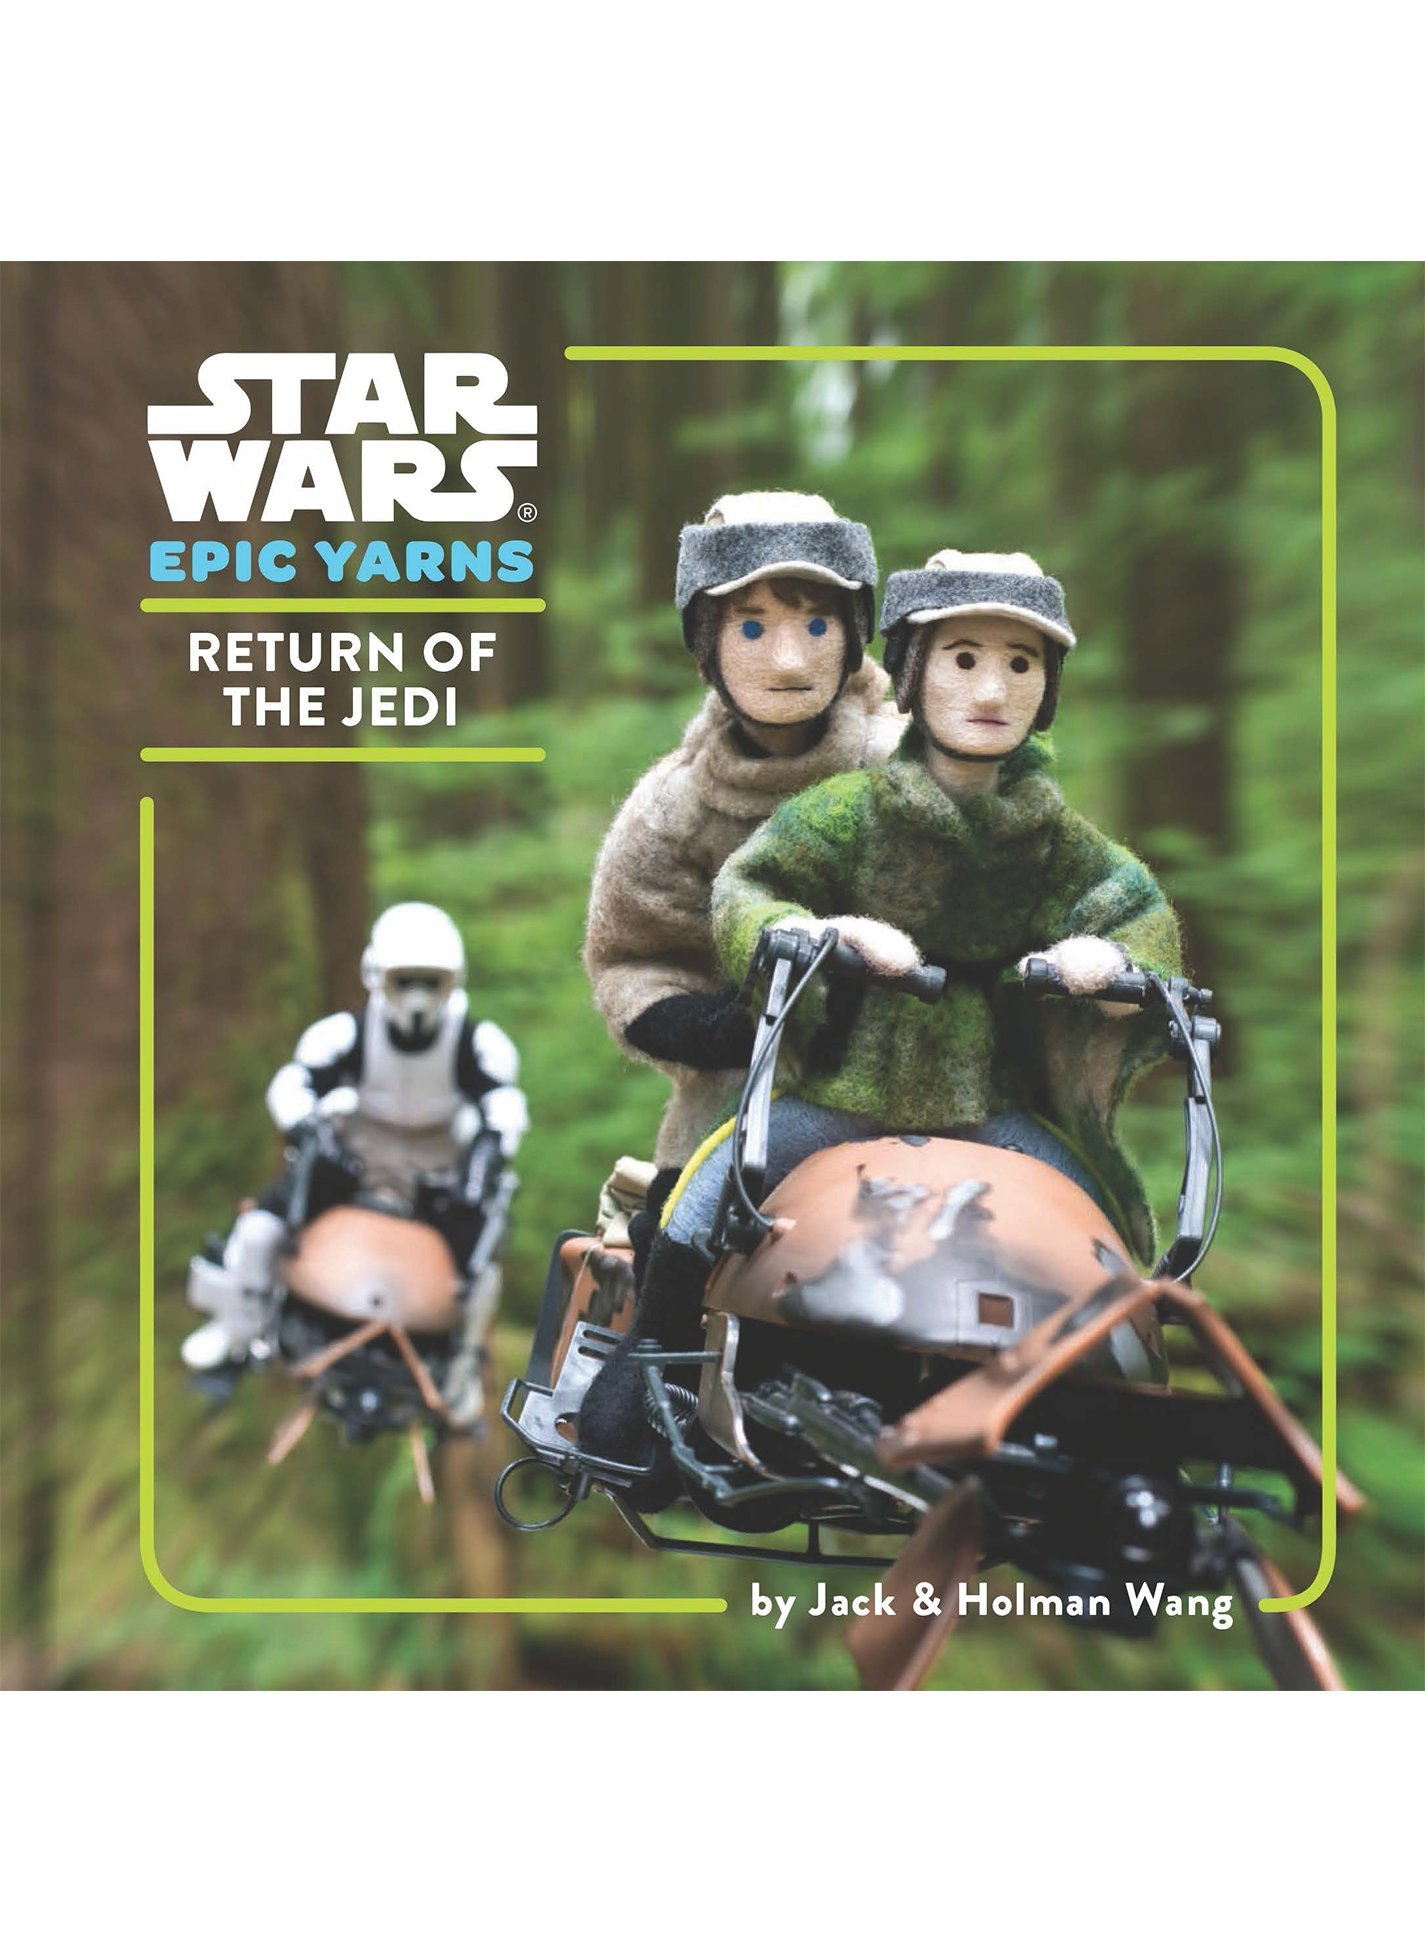 Star Wars Epic Yarns Return of the Jedi